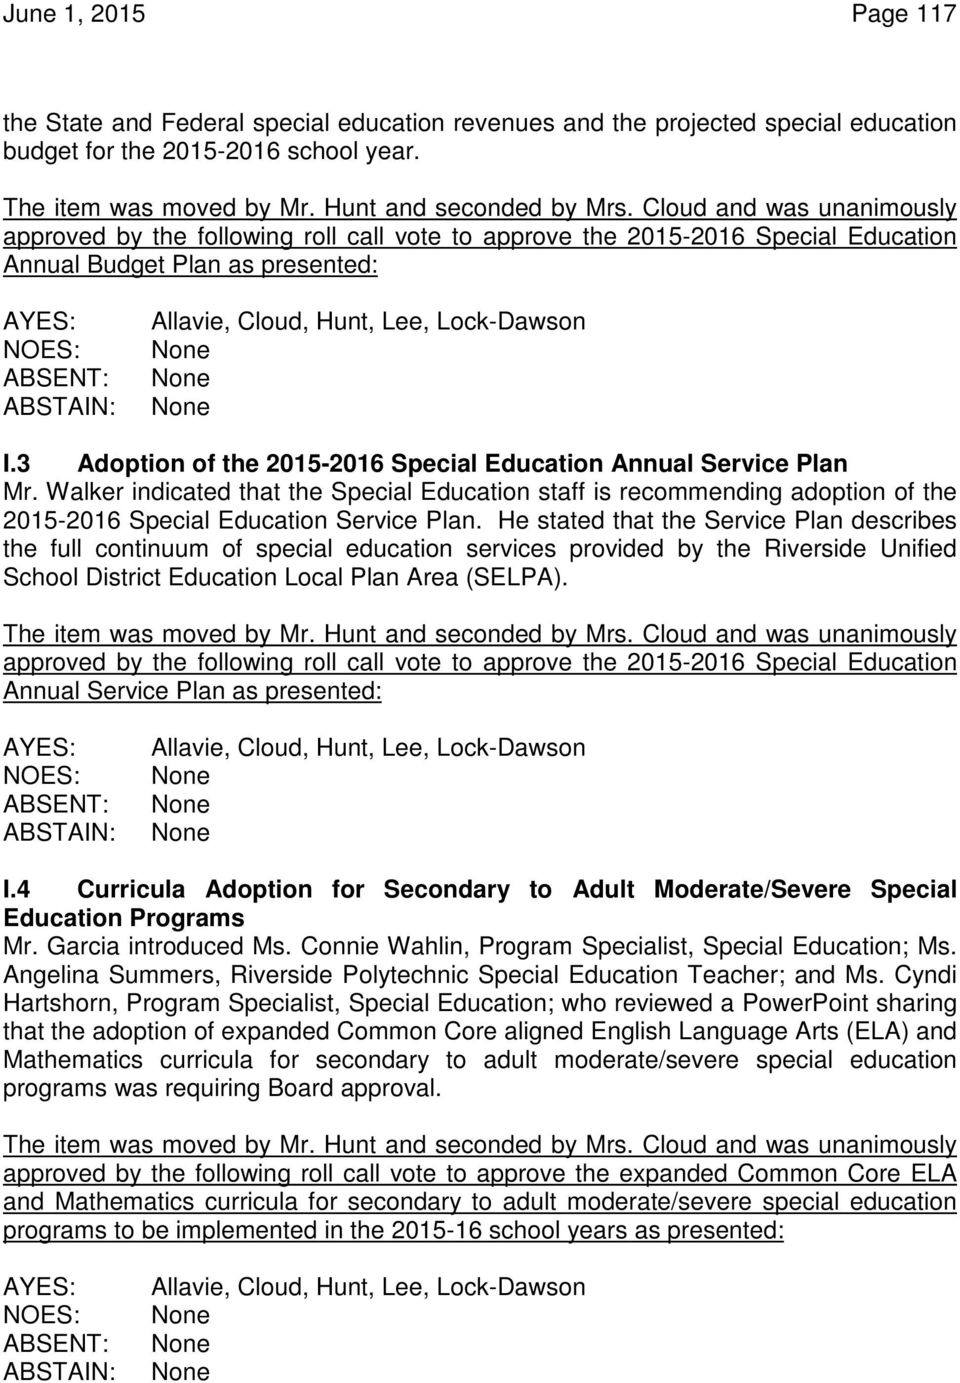 3 Adoption of the 2015-2016 Special Education Annual Service Plan Mr. Walker indicated that the Special Education staff is recommending adoption of the 2015-2016 Special Education Service Plan.